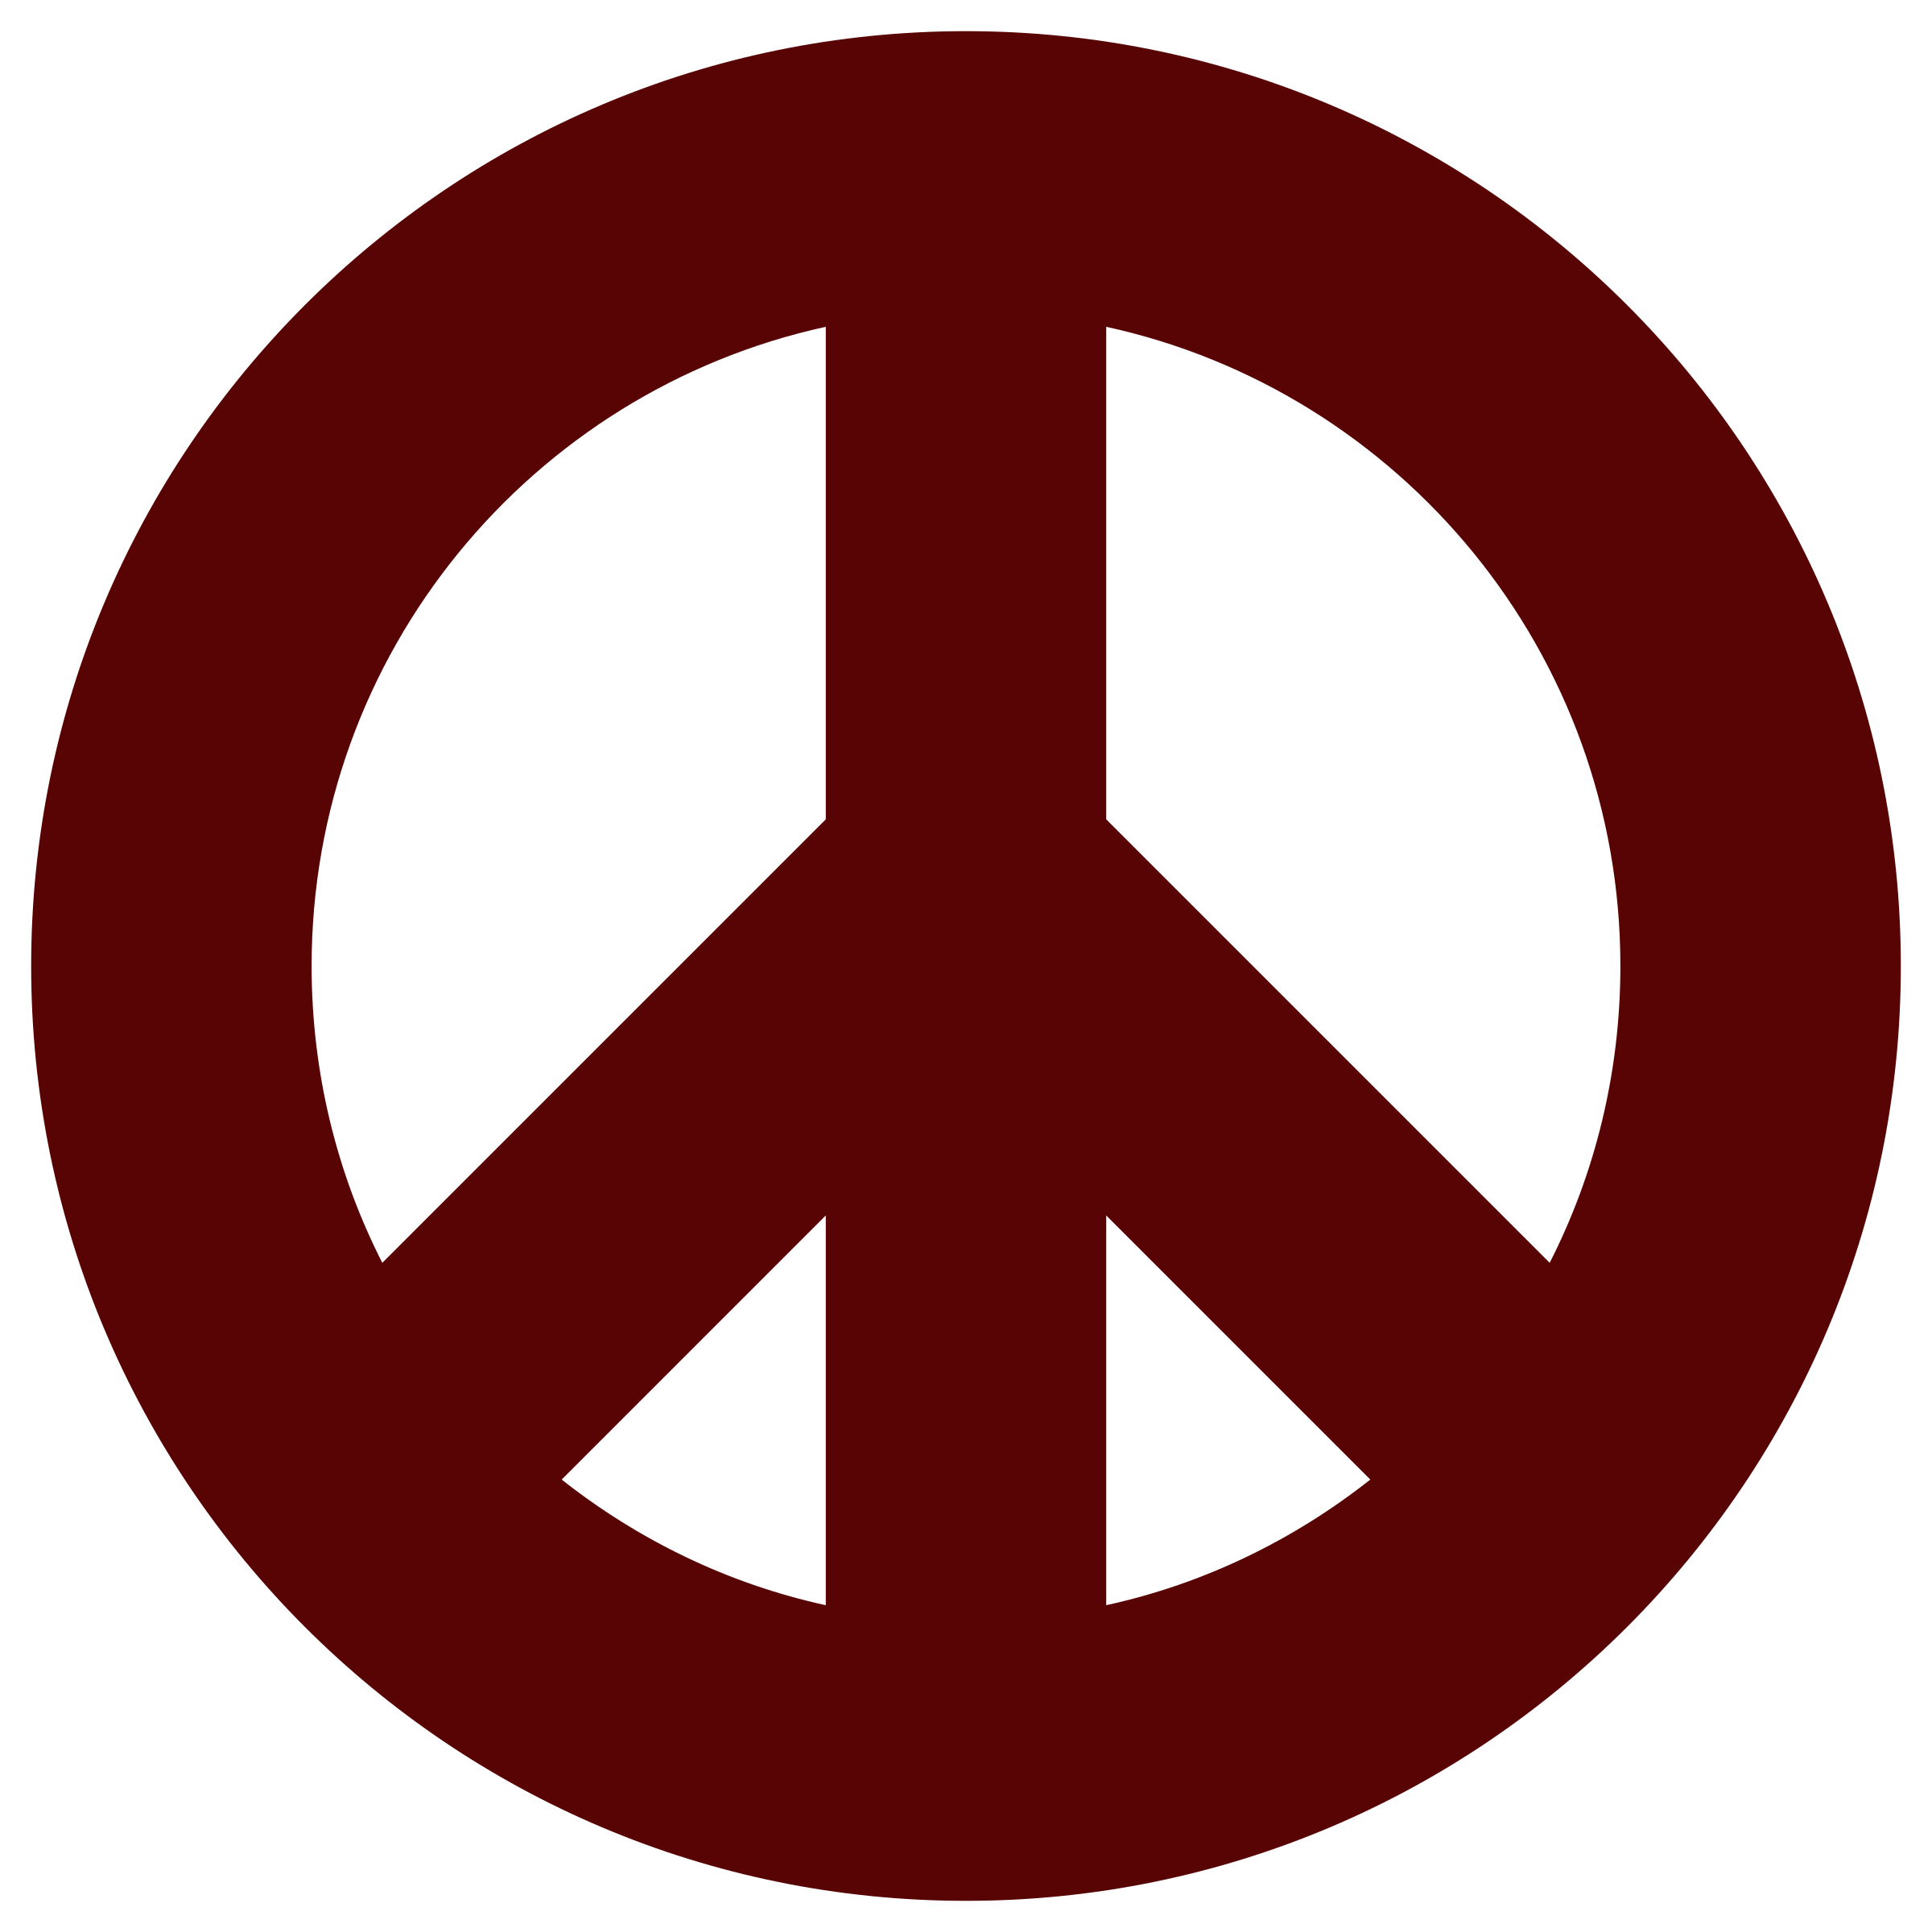 Peace Sign clipart Sign 6 clipart Clipartix sign